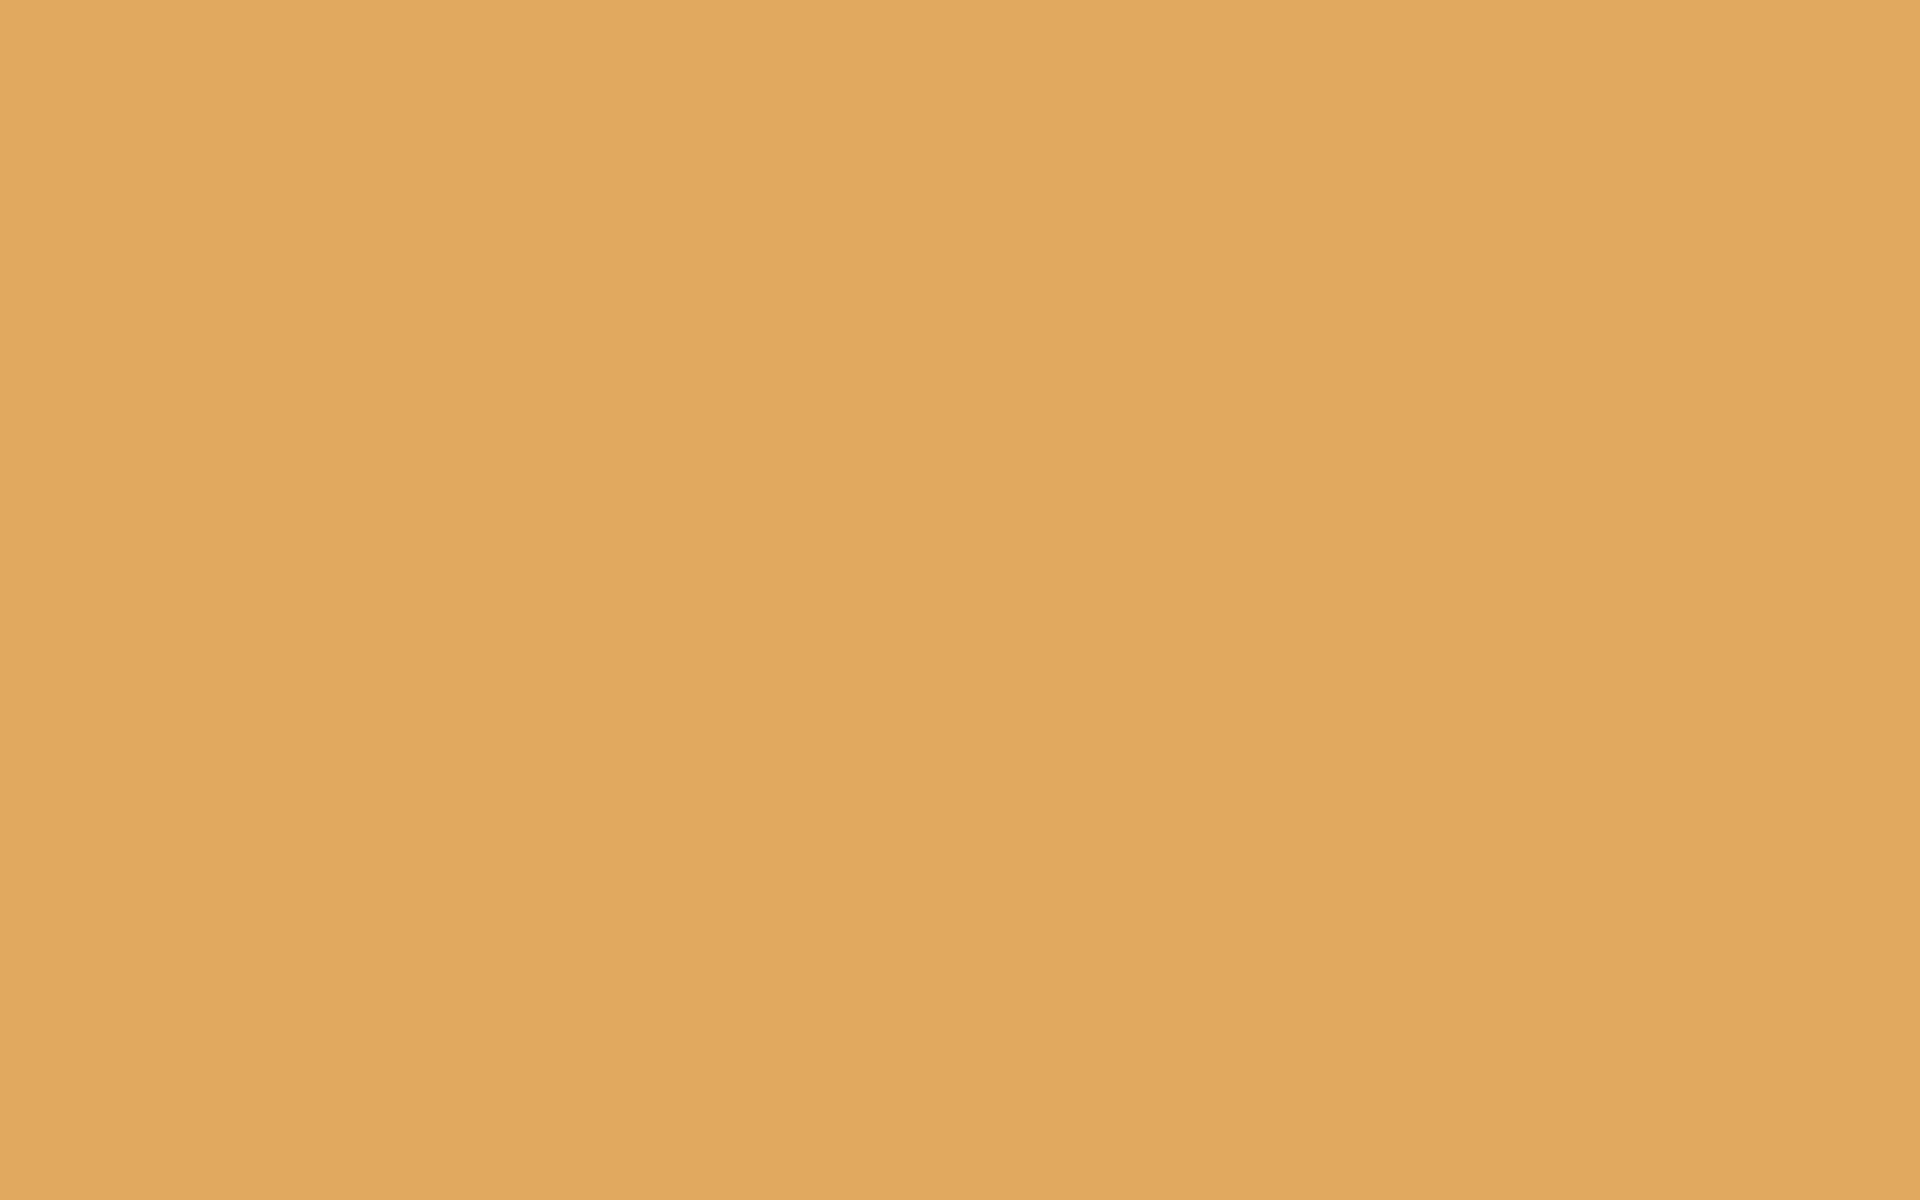 1920x1200 Earth Yellow Solid Color Background